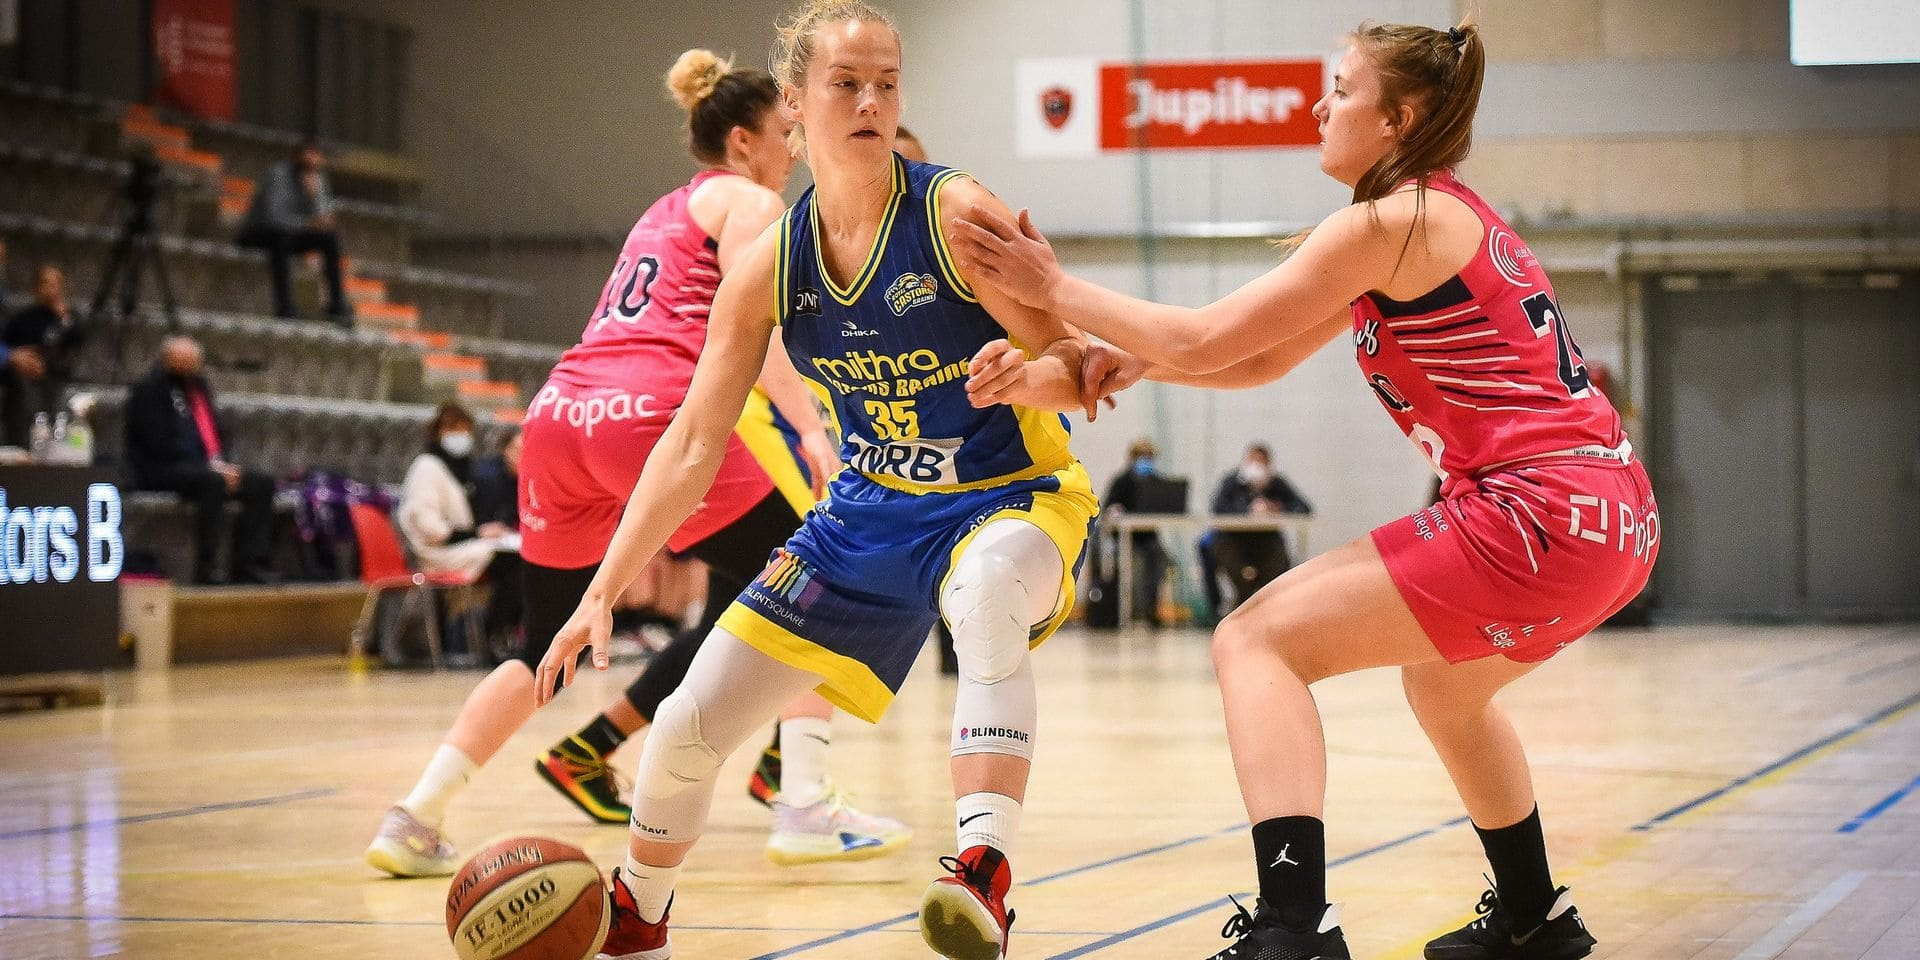 Playoffs D1 Dames: les Castors sans trembler face aux Panthers (58-81)